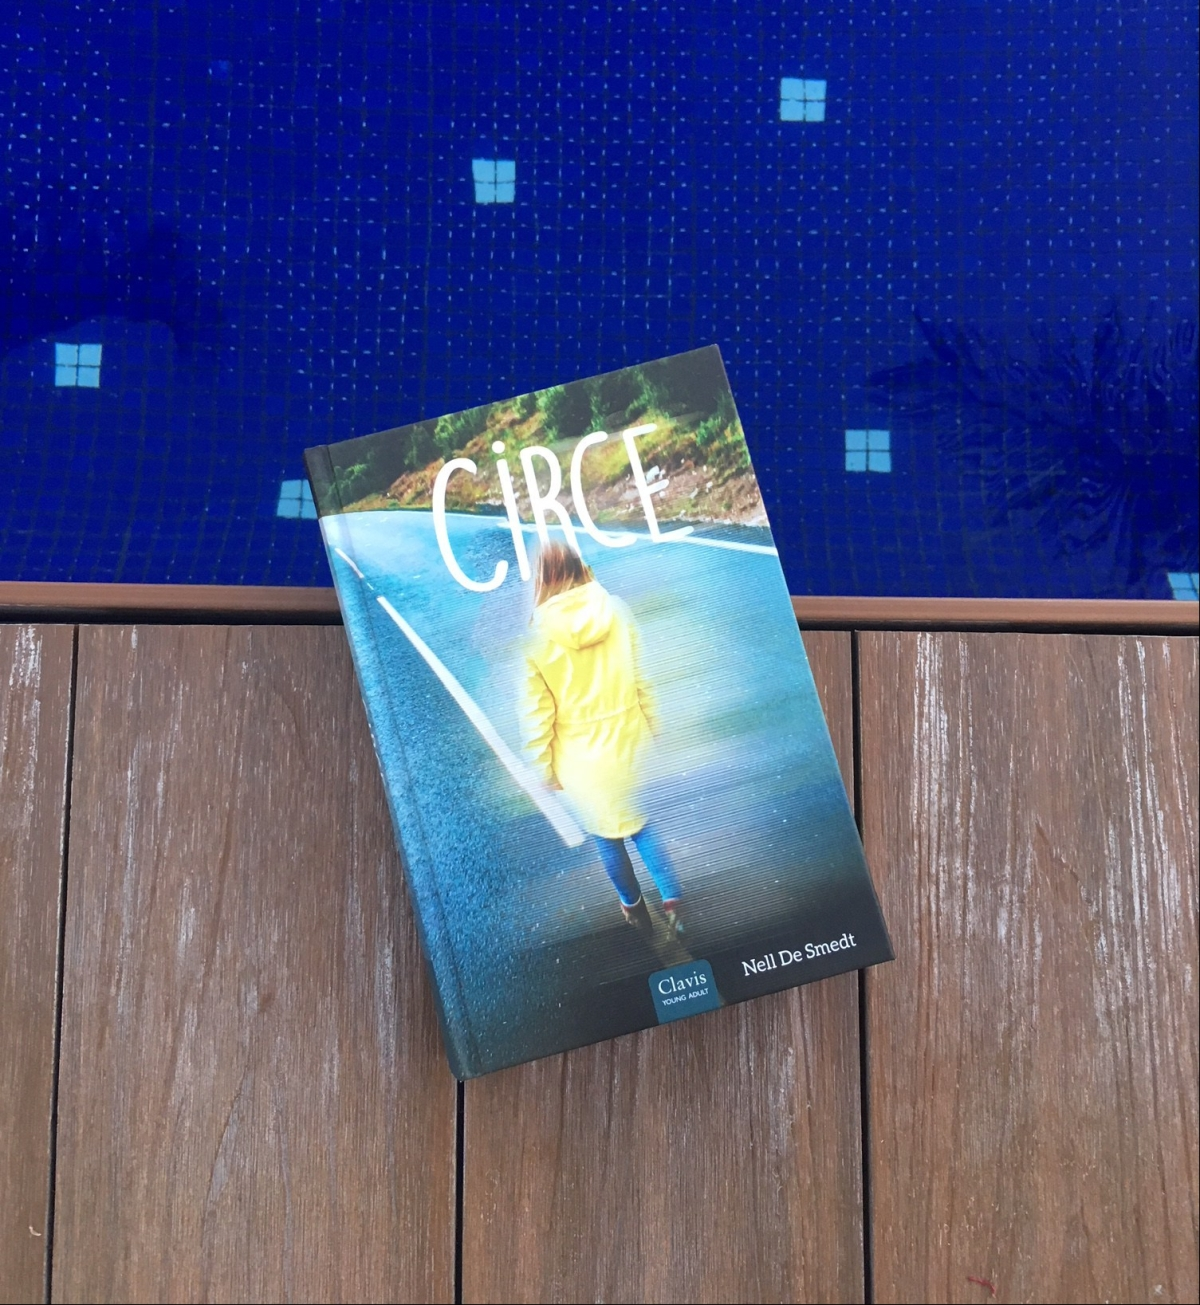 Circe – Nell DeSmedt